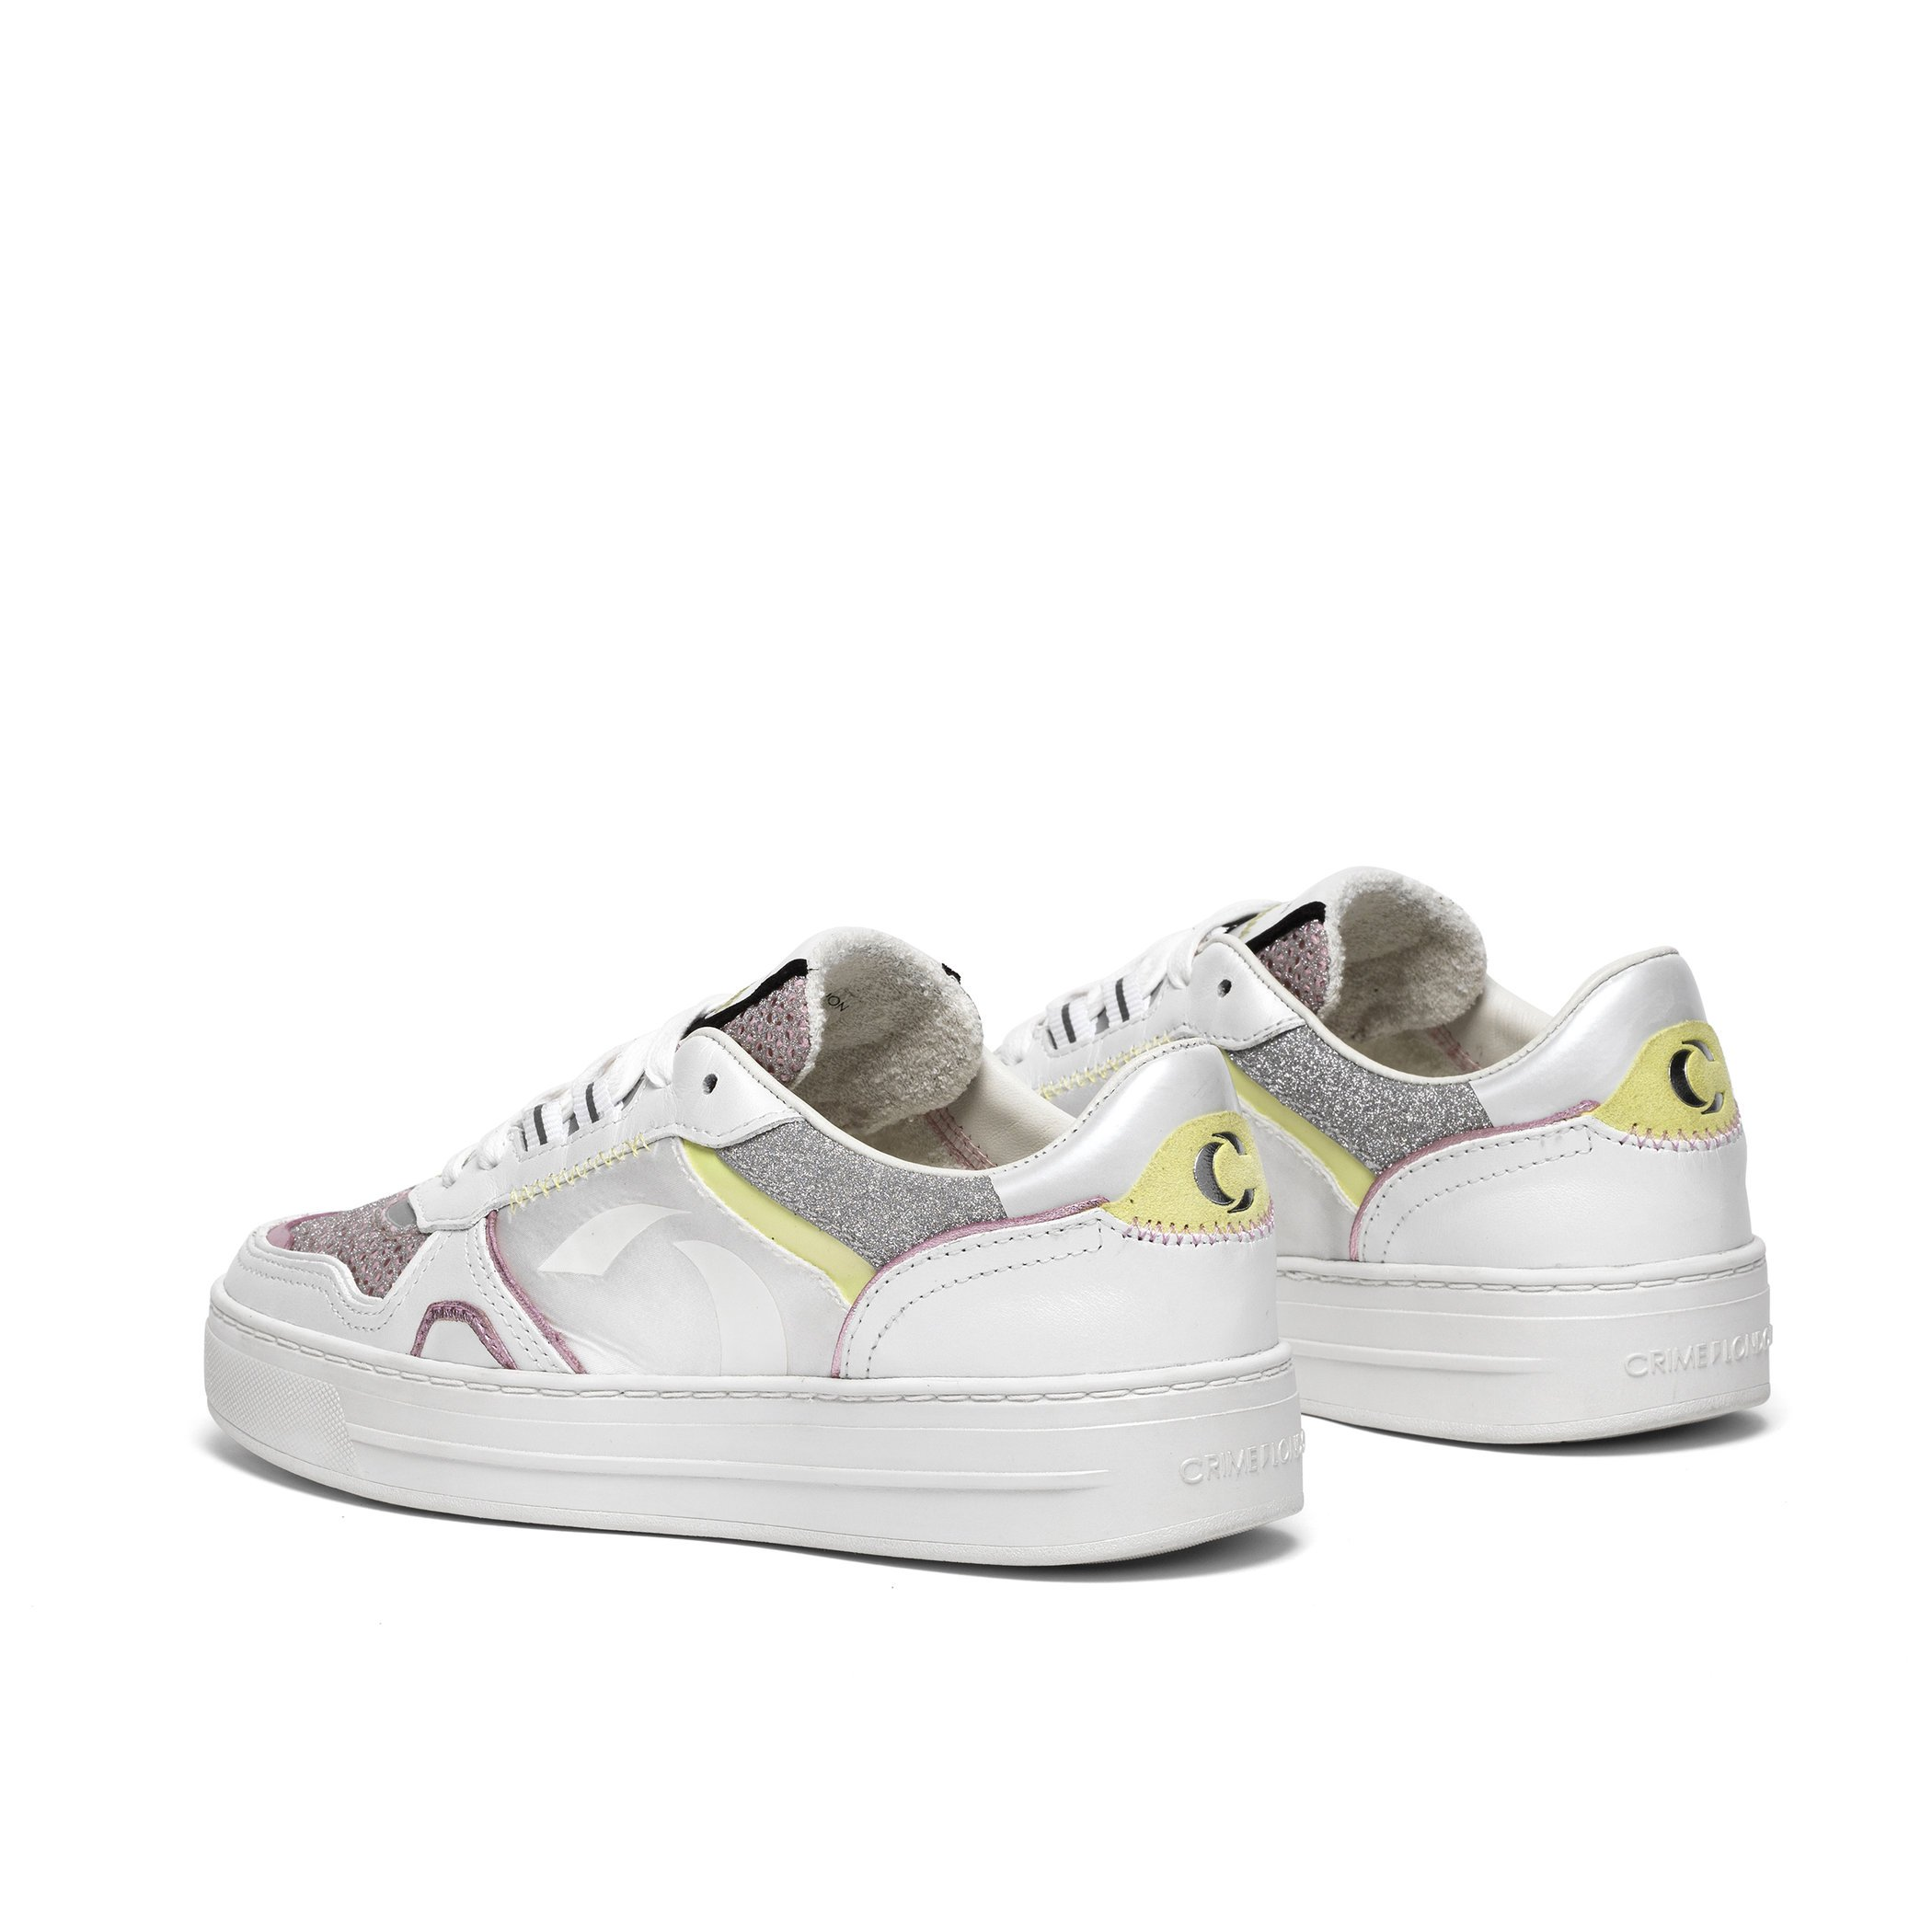 sneakers low top off court crime london CRIME LONDON | Sneakers | 25010PP3B10